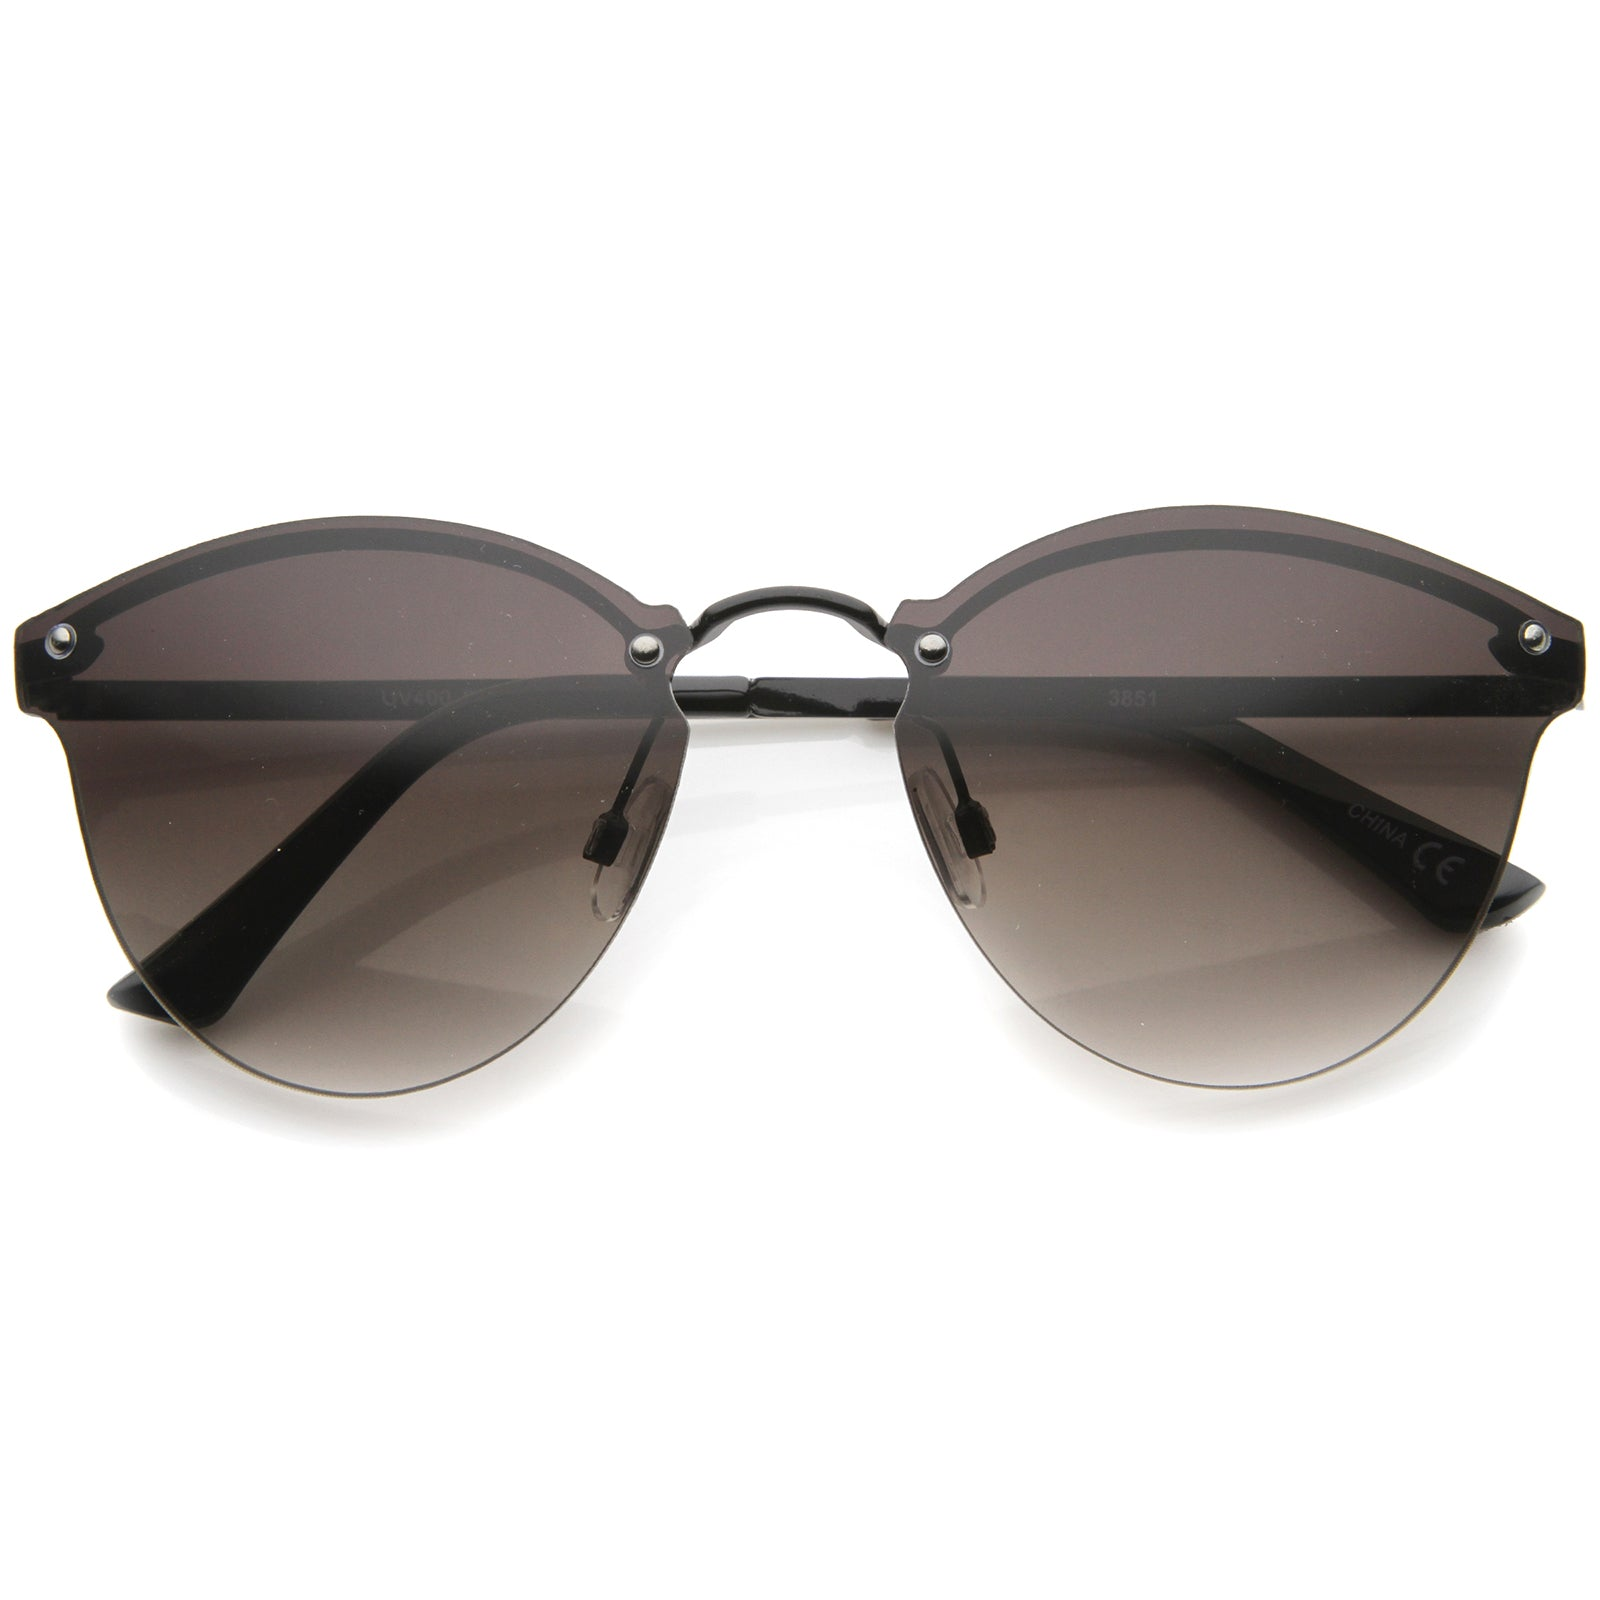 Womens Fashion Lightweight Rimless Metal Temple Cat Eye Sunglasses - sunglass.la - 13